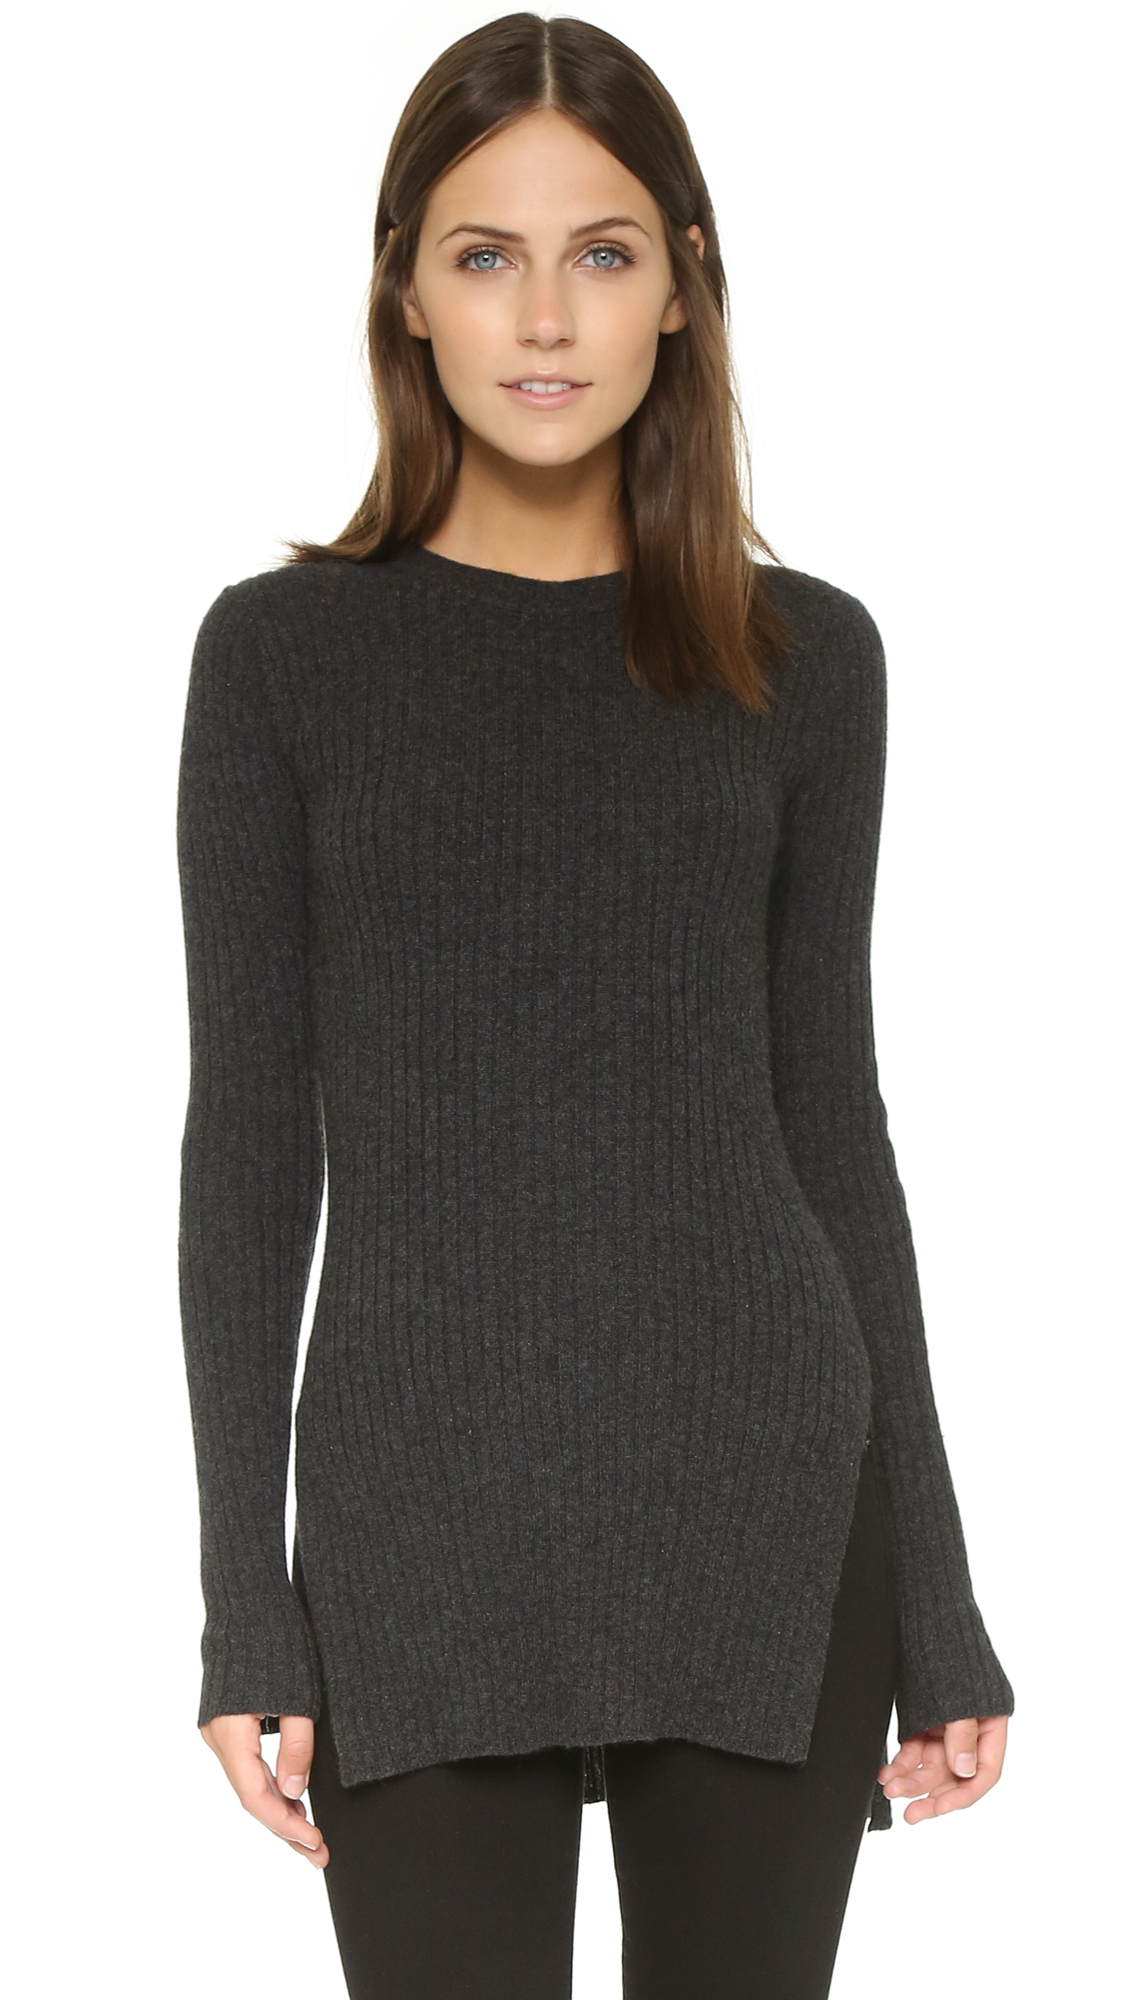 Autumn cashmere Ribbed Tunic With Side Slits - Pepper in Gray | Lyst